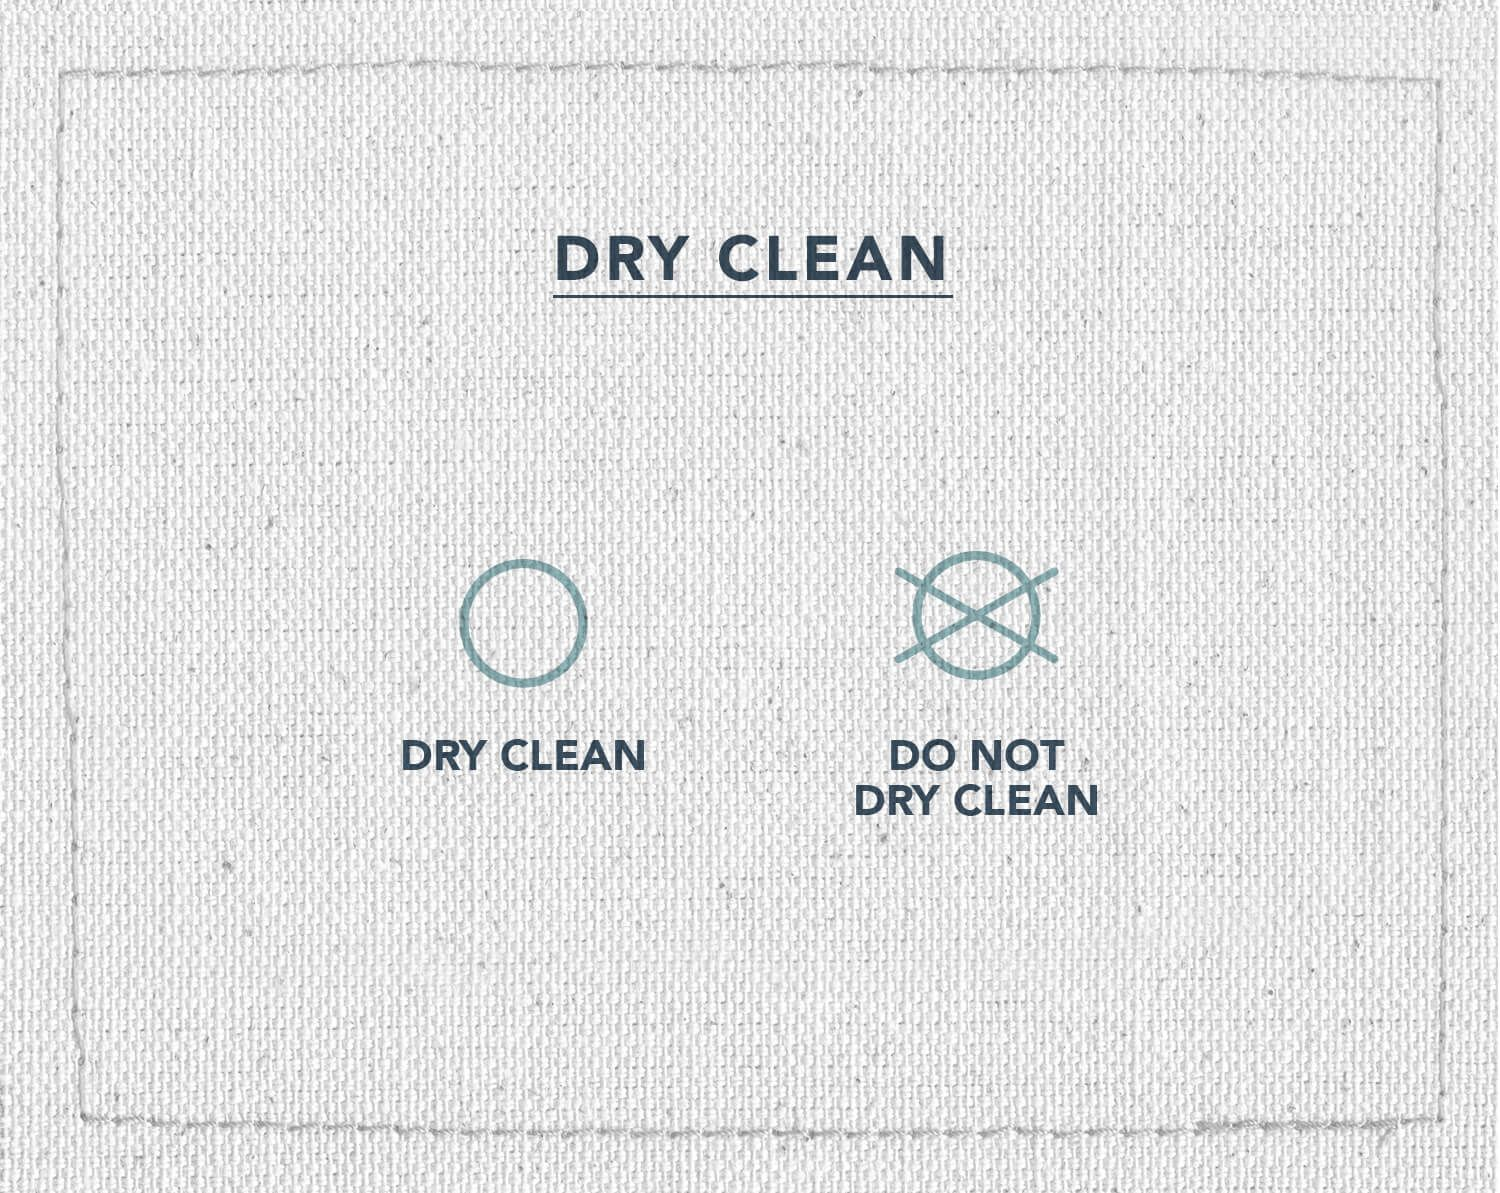 An infographic of two laundry care symbols indicating if you can dry clean your clothes or not, dry clean and do not dry clean